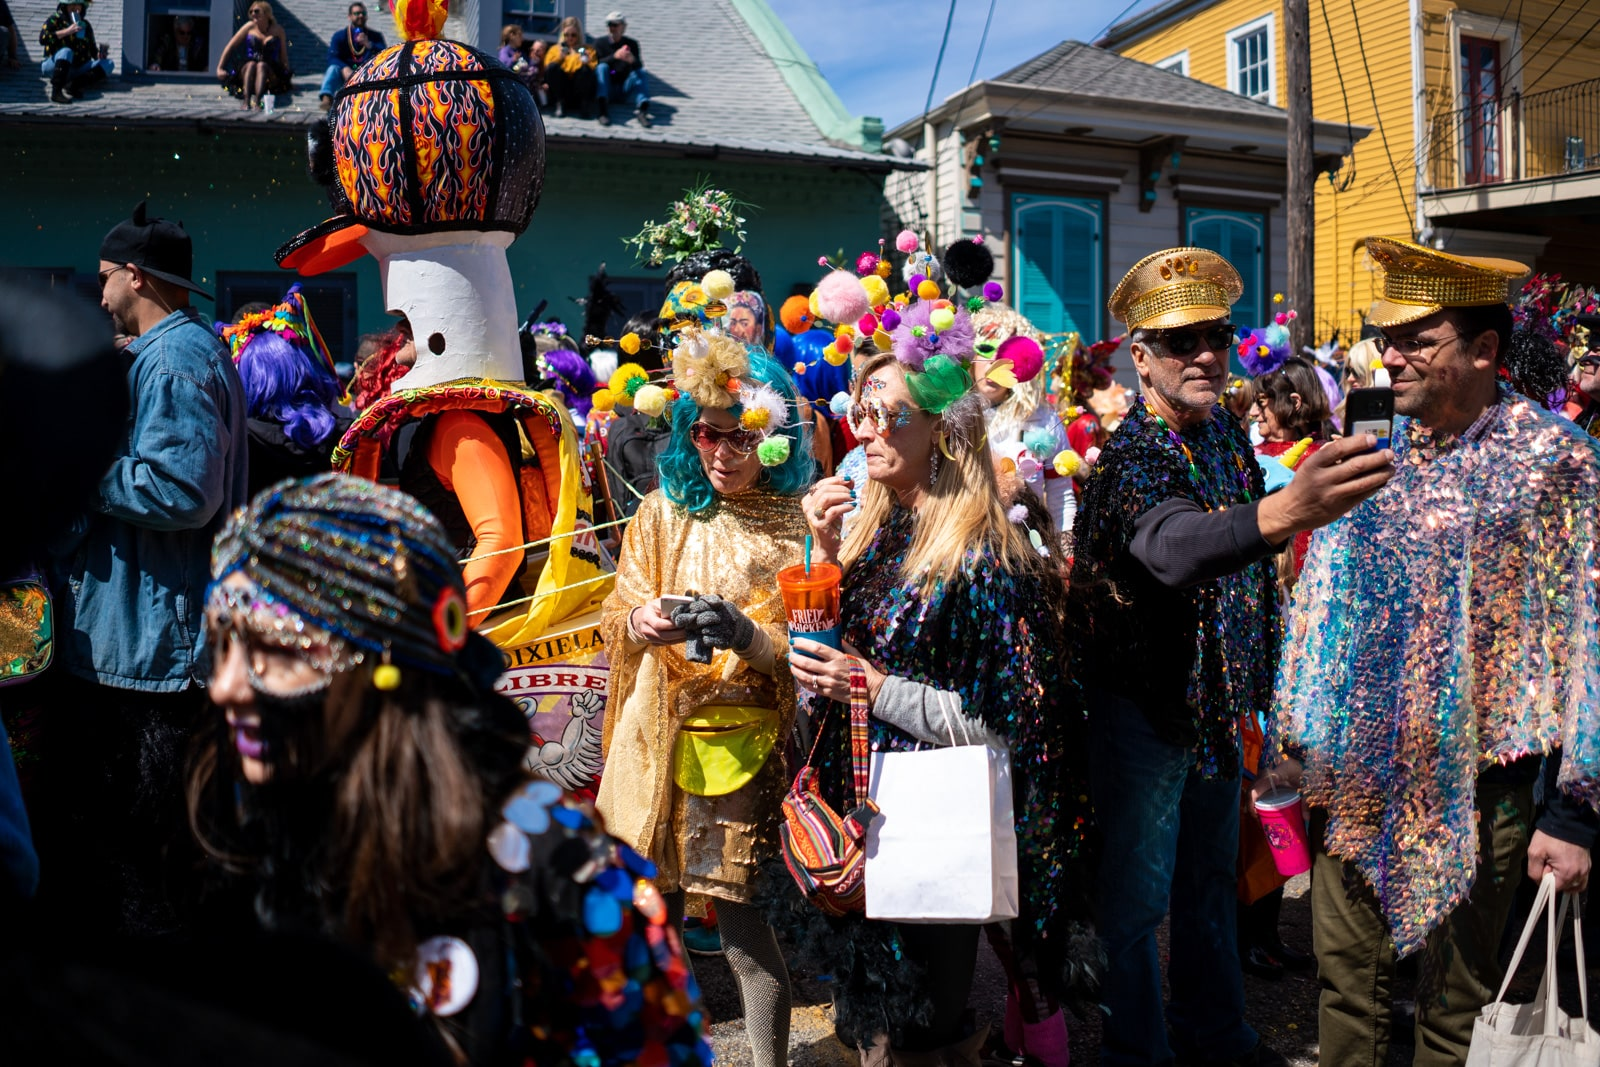 Mardi Gras costumes in the Marigny during Mardi Gras in New Orleans